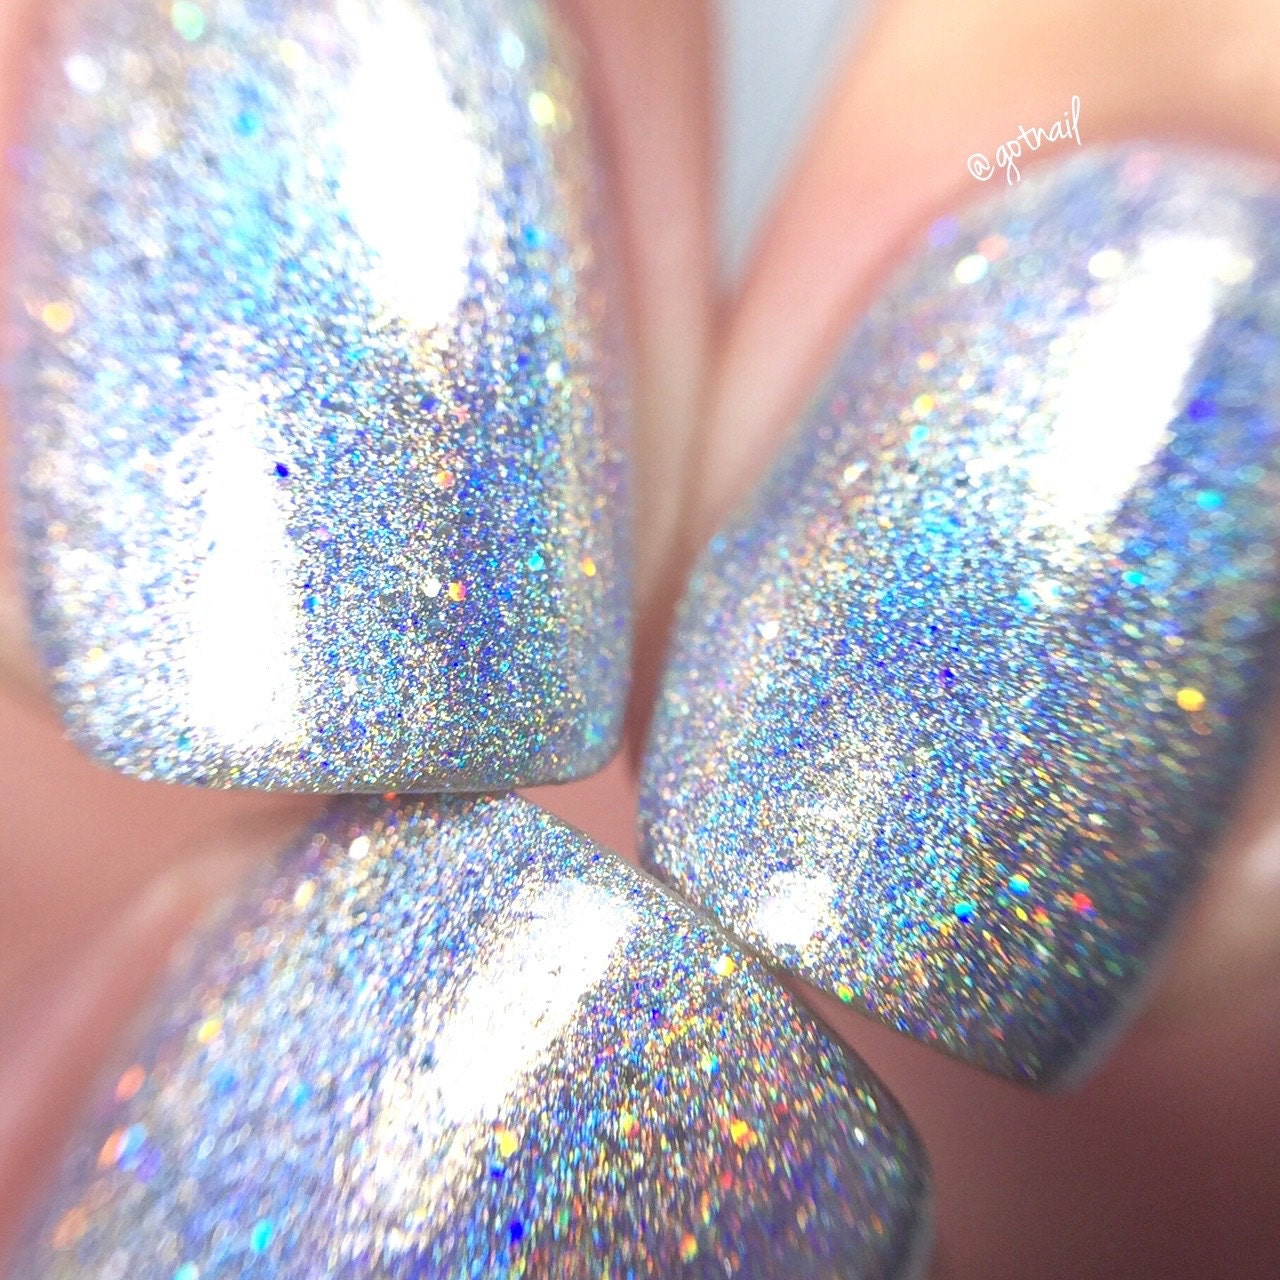 100% Holographic Chasing Rainbows Rainbow Glitter Nail